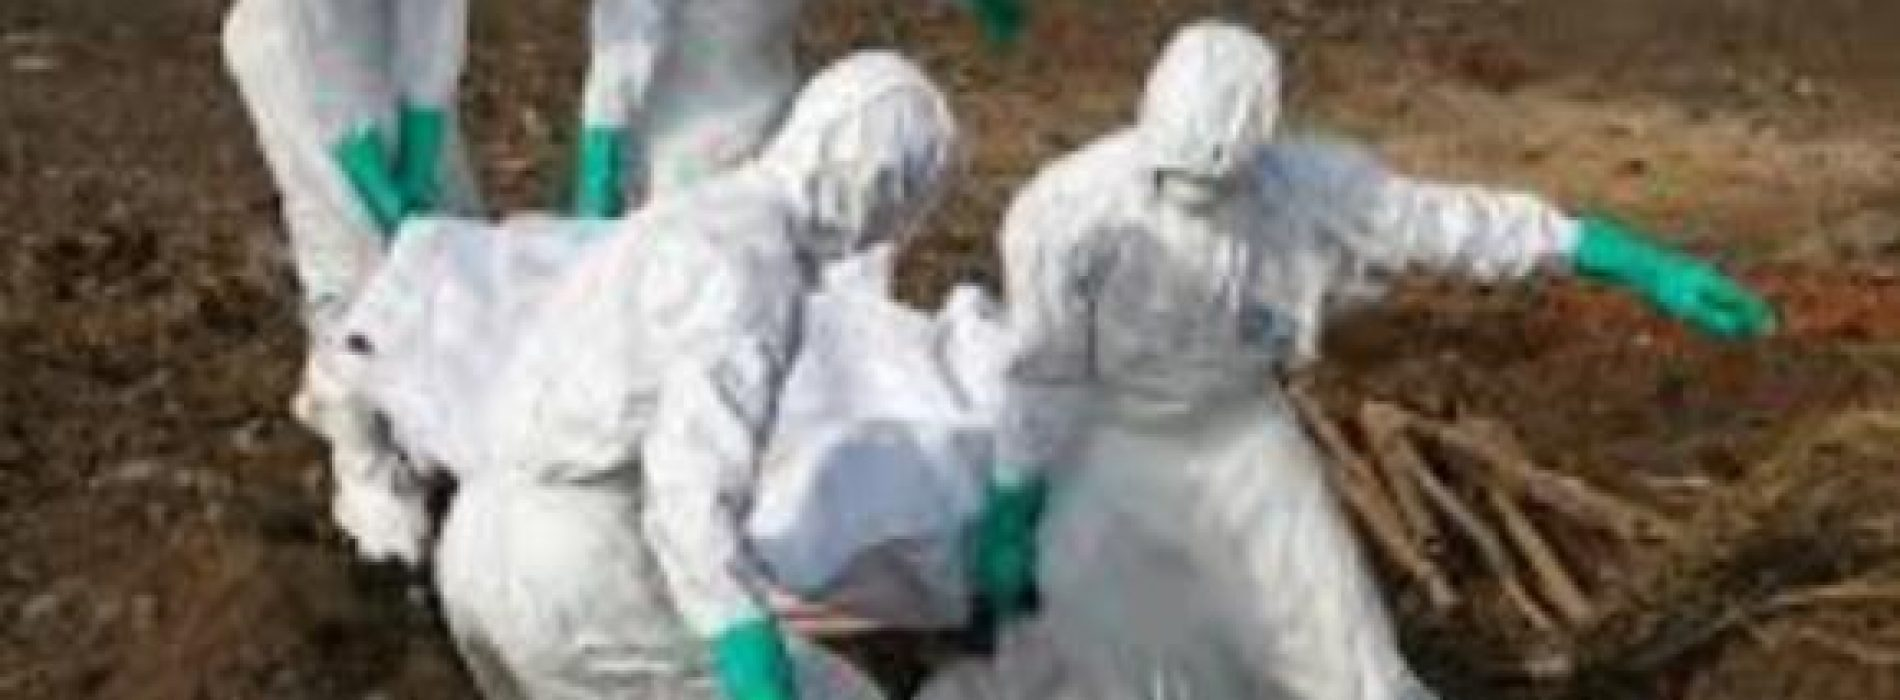 Catholic priest infected with Ebola